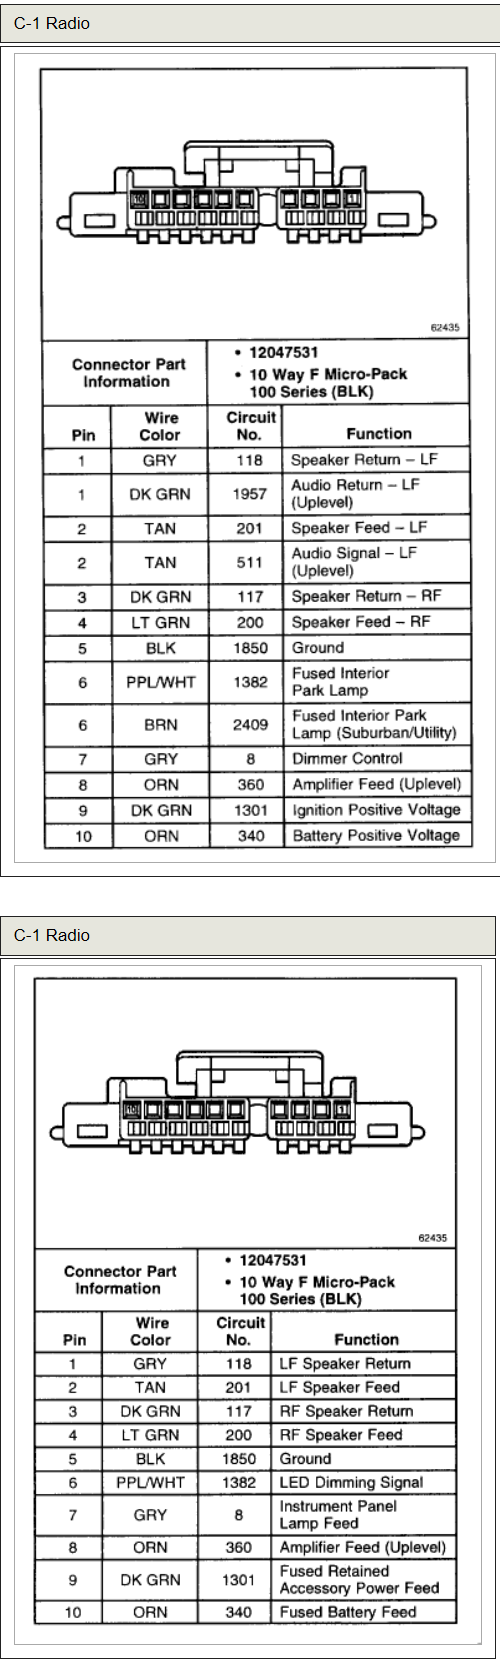 wiring diagram for 2000 chevy silverado 2011 silverado radio wiring diagram wiring diagrams blog  2011 silverado radio wiring diagram